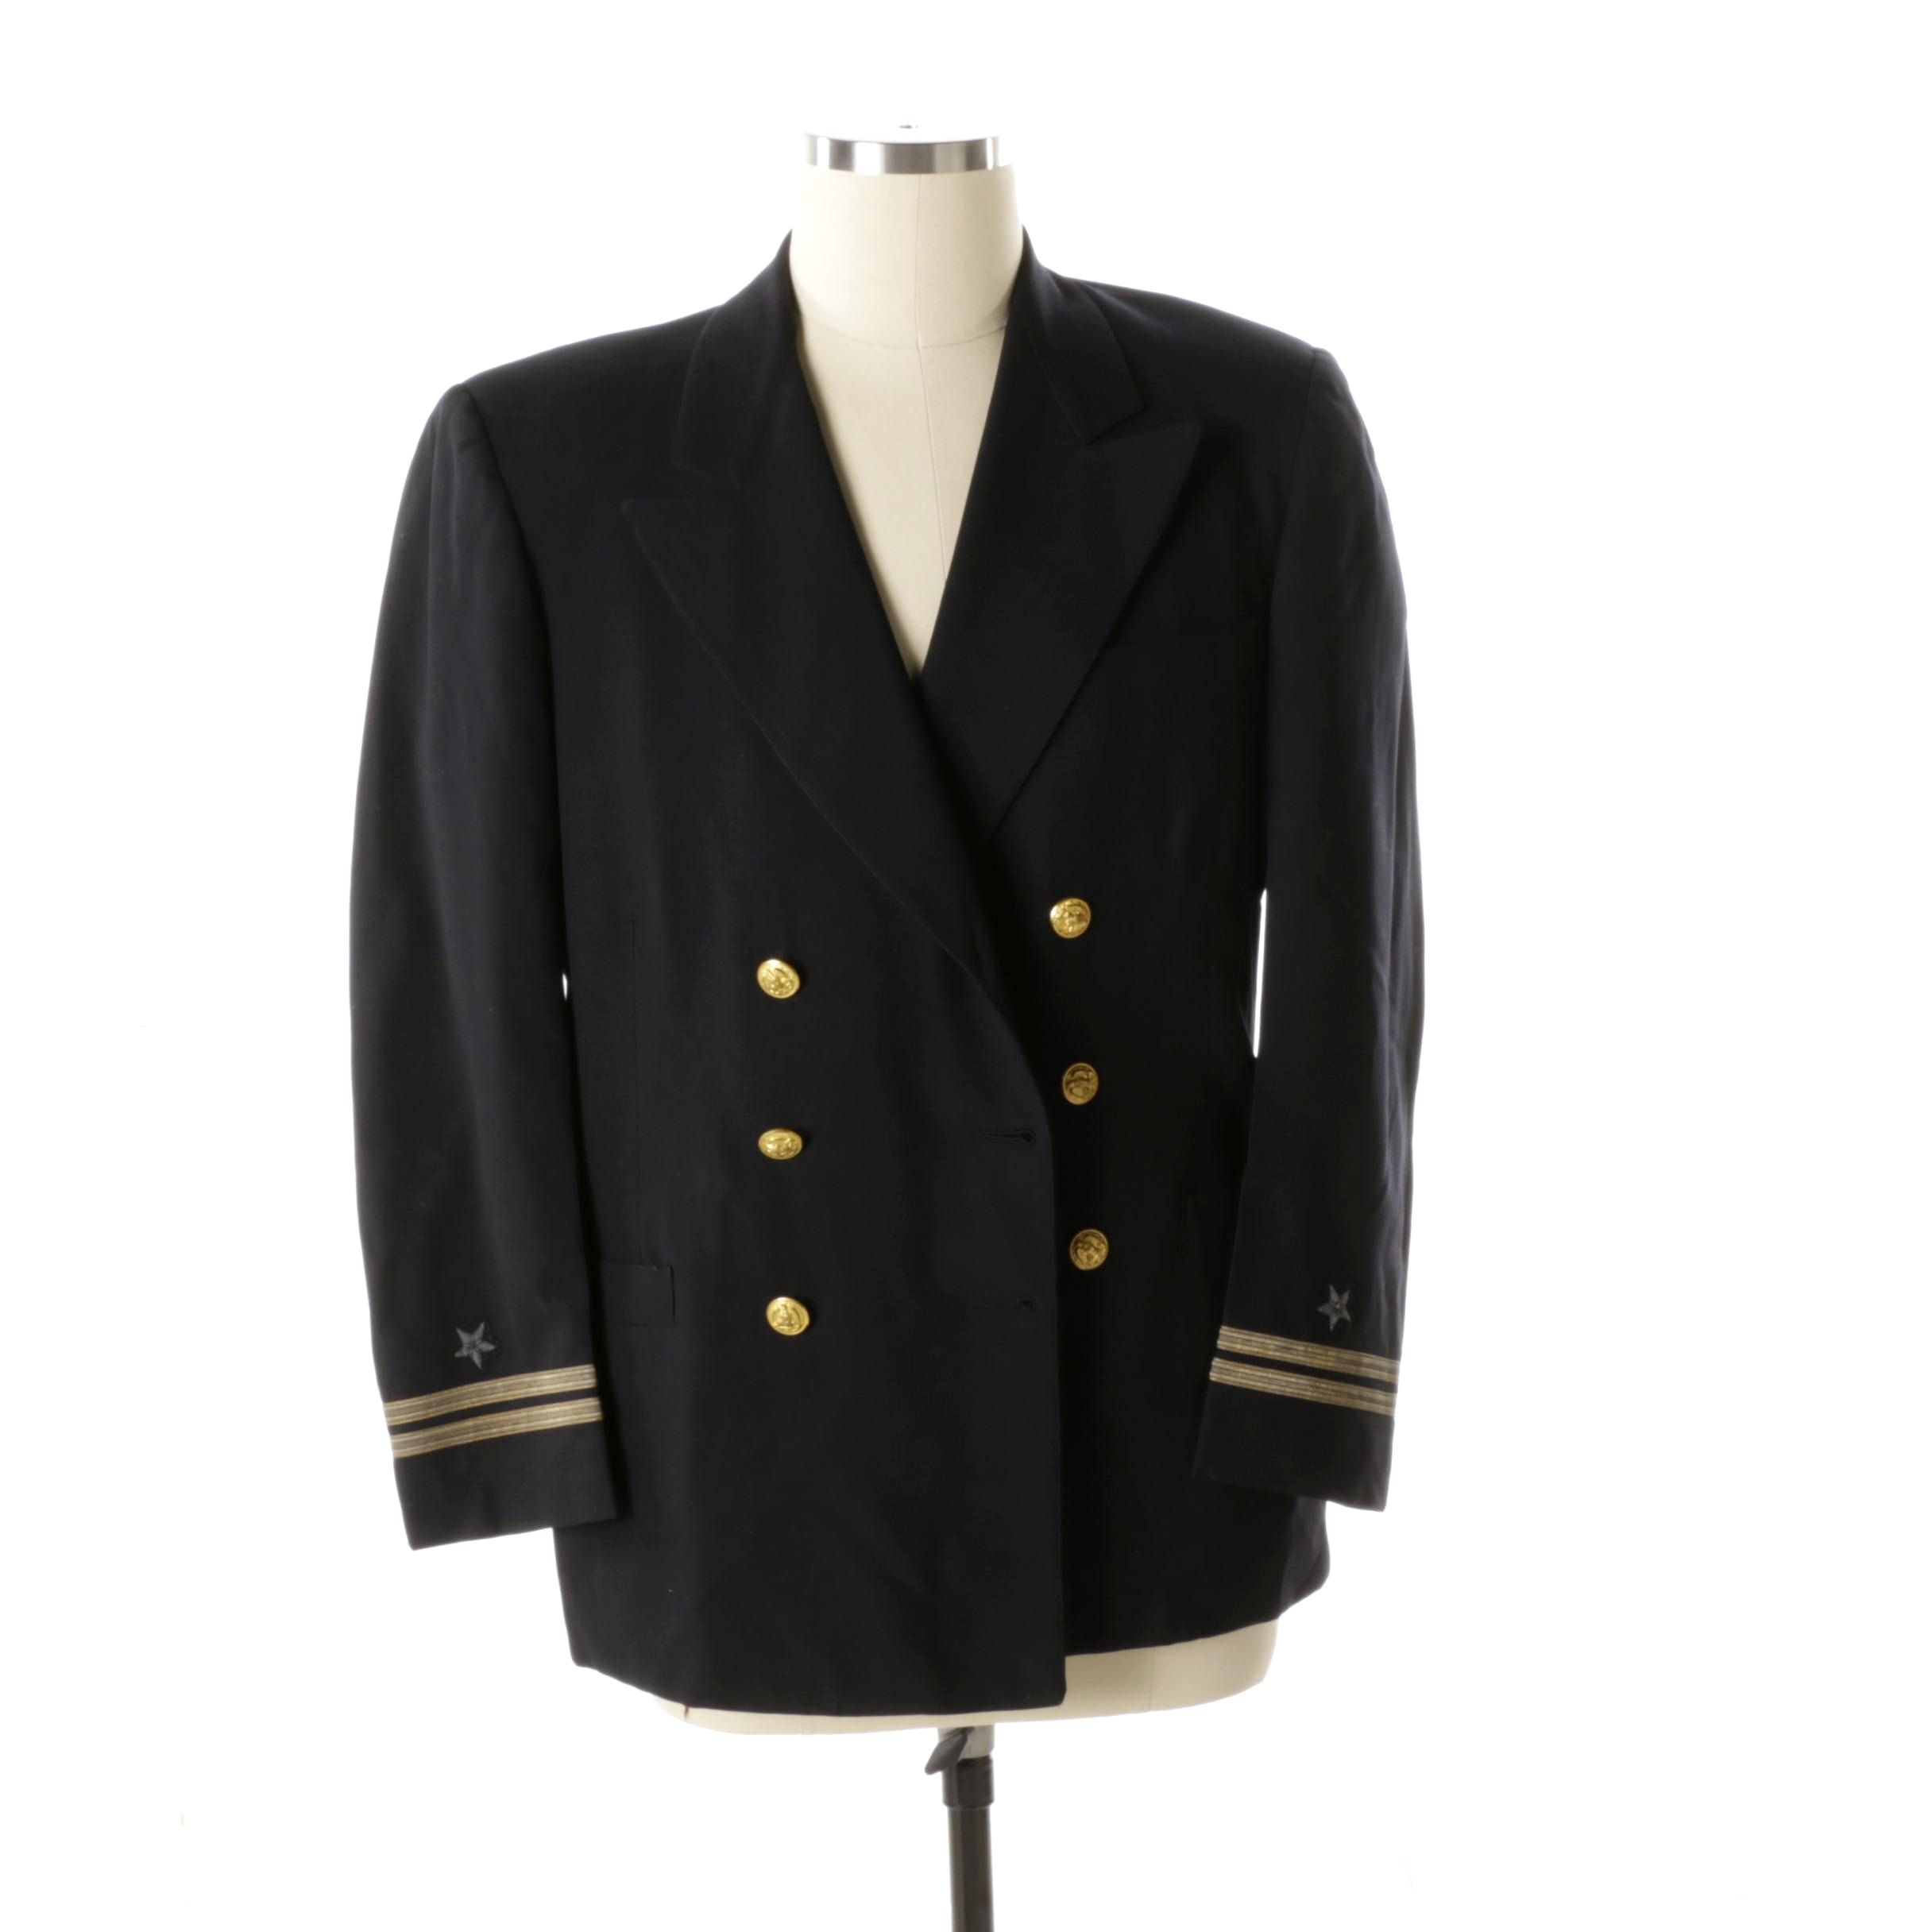 Men's U.S. Navy Service Dress Blue Coat